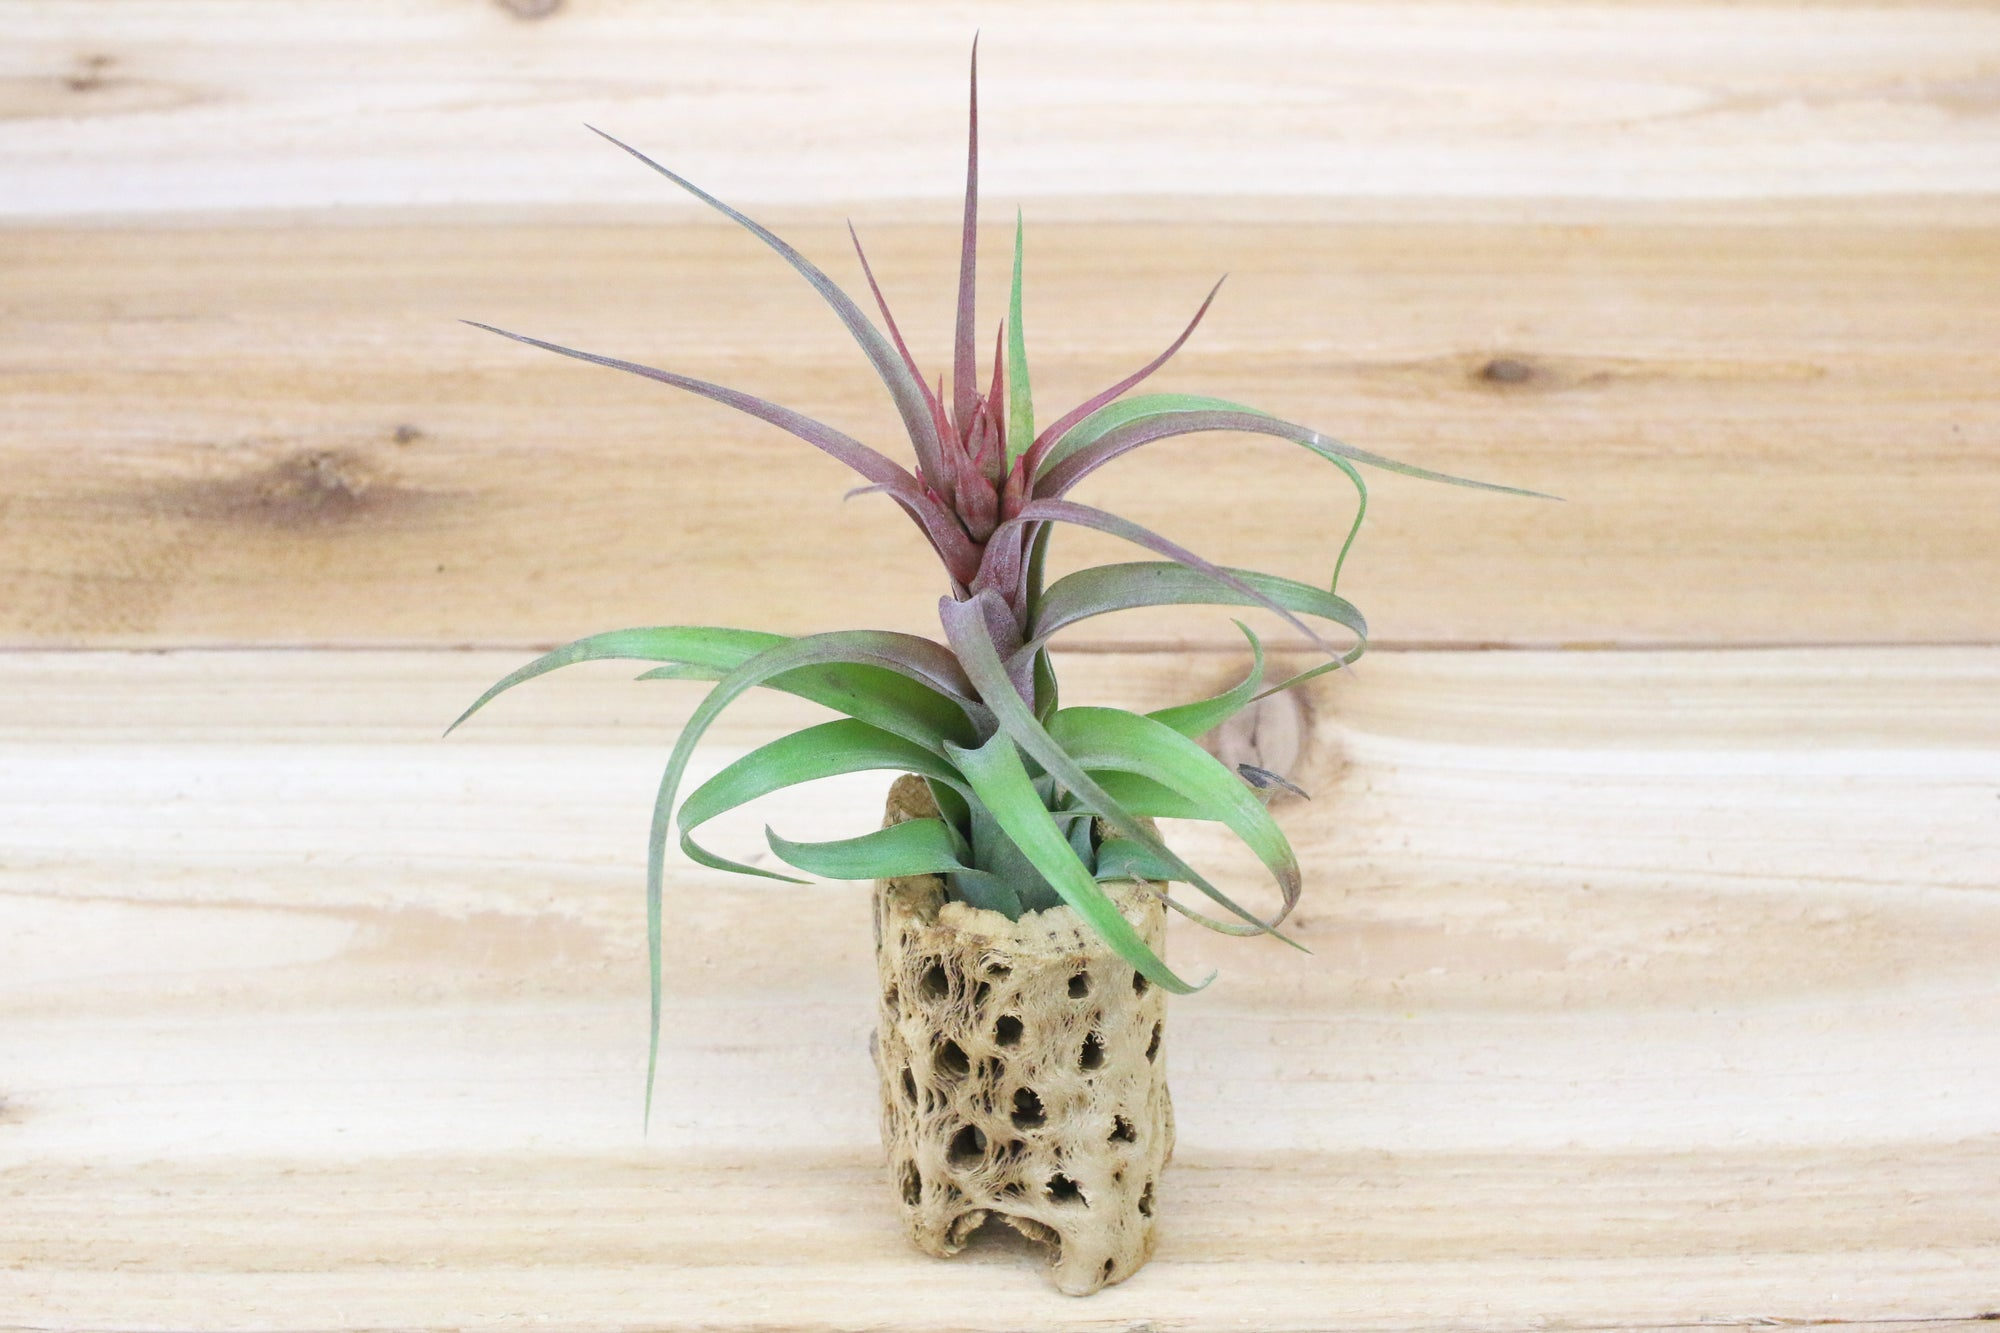 Wholesale: 6 Inch Tall Cholla Wood Containers with Assorted Air Plants [Min Order 12] from AirPlantShop.com